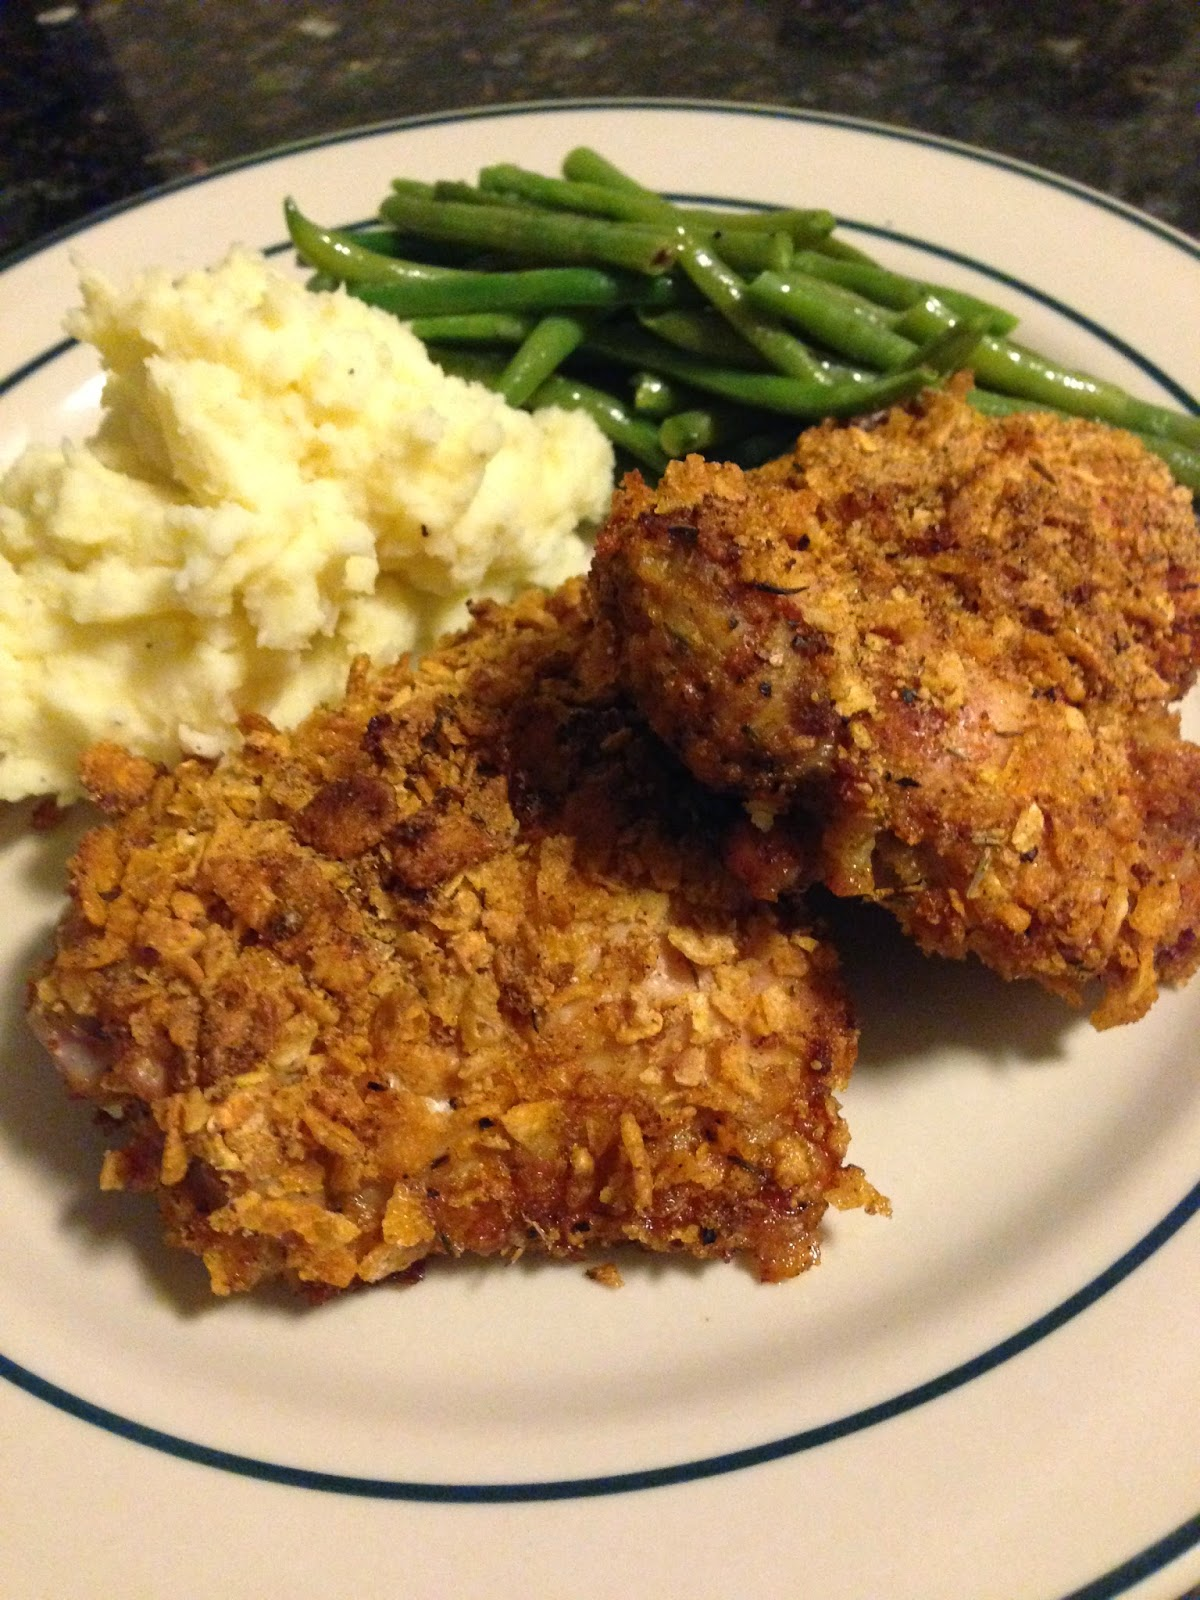 Chicken & Crumbs - Oven Baked Cornflake Chicken